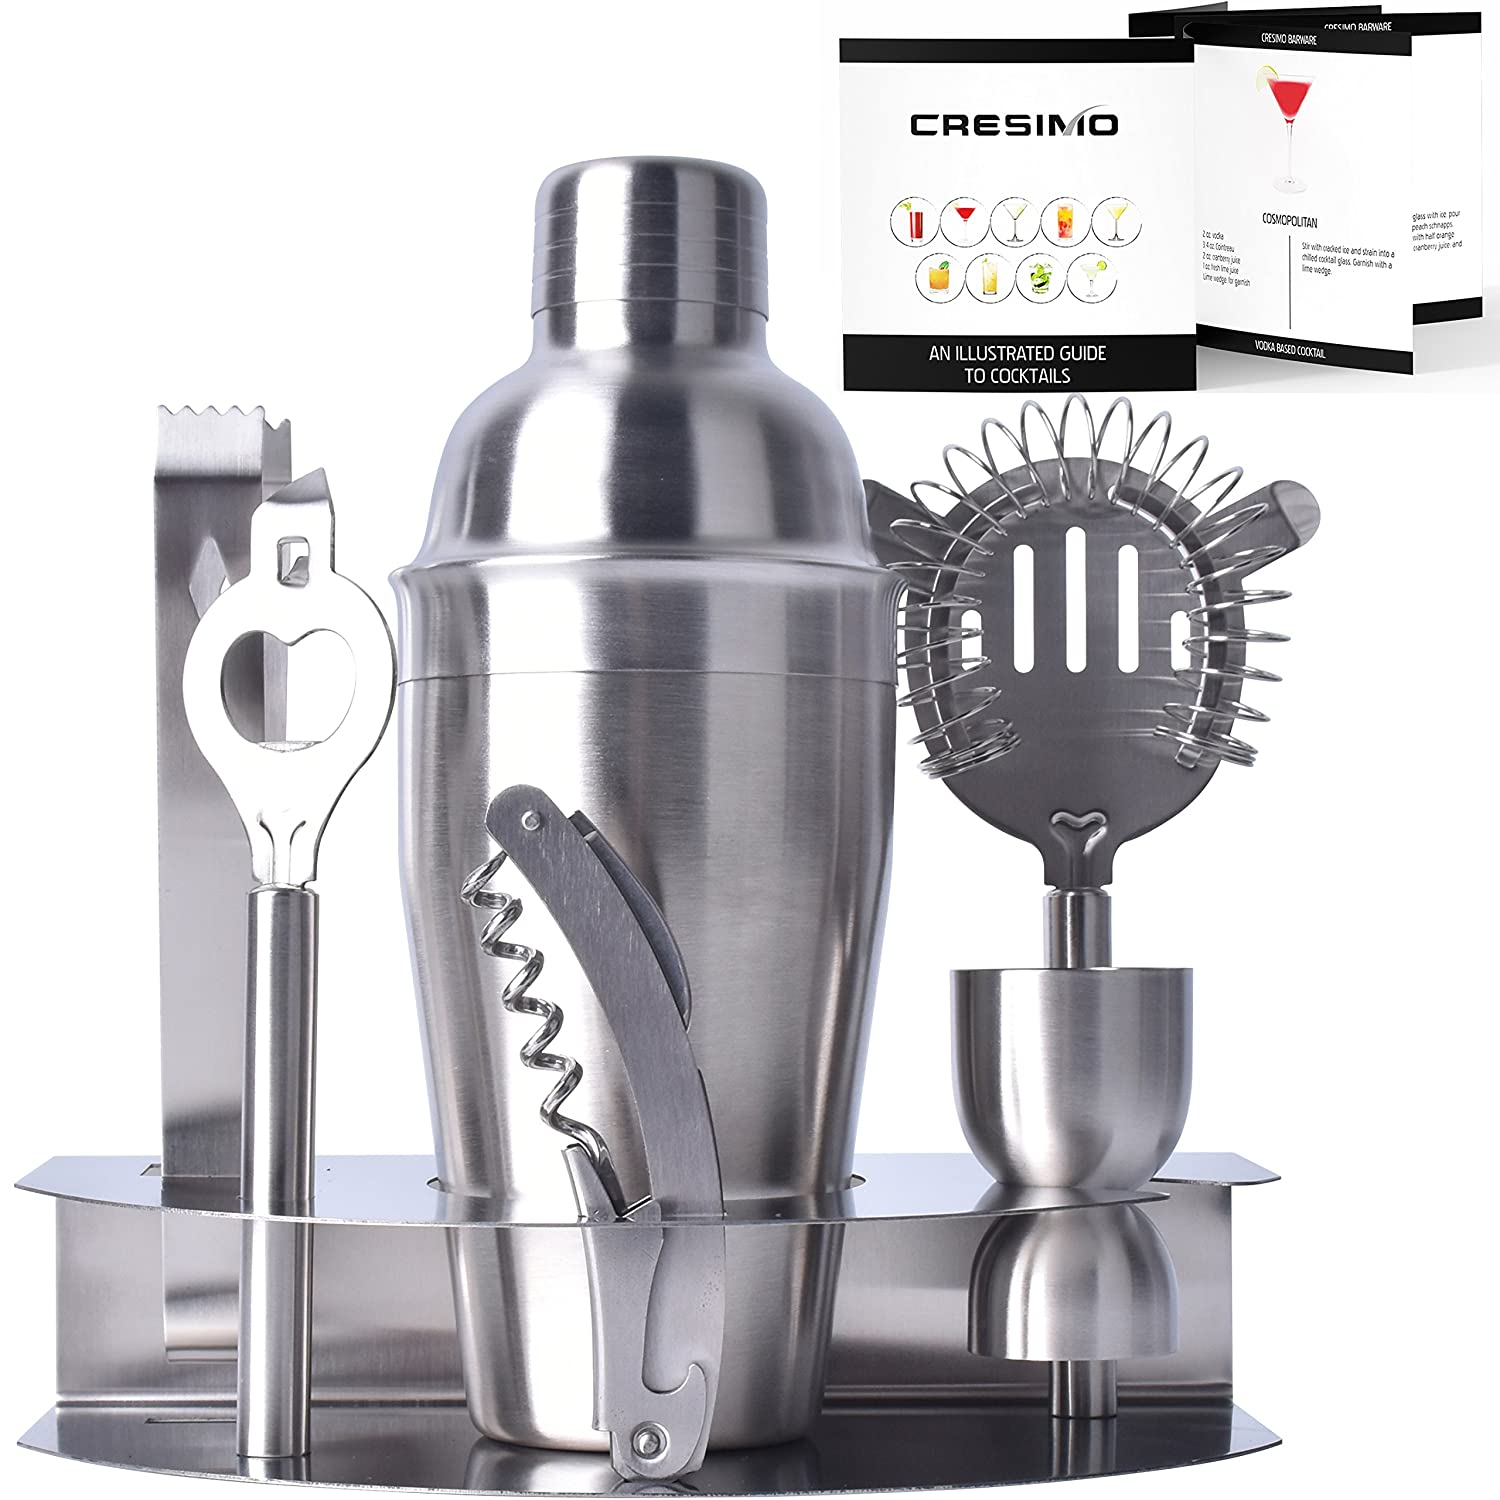 Home Cocktail Bar Set by Cresimo – Stainless Steel 7 Piece Professional Bar Tool Kit – 100% GUARANTEE AND WARRANTY. Includes Martini Shaker, Strainer, Jigger and More! SYNCHKG101834